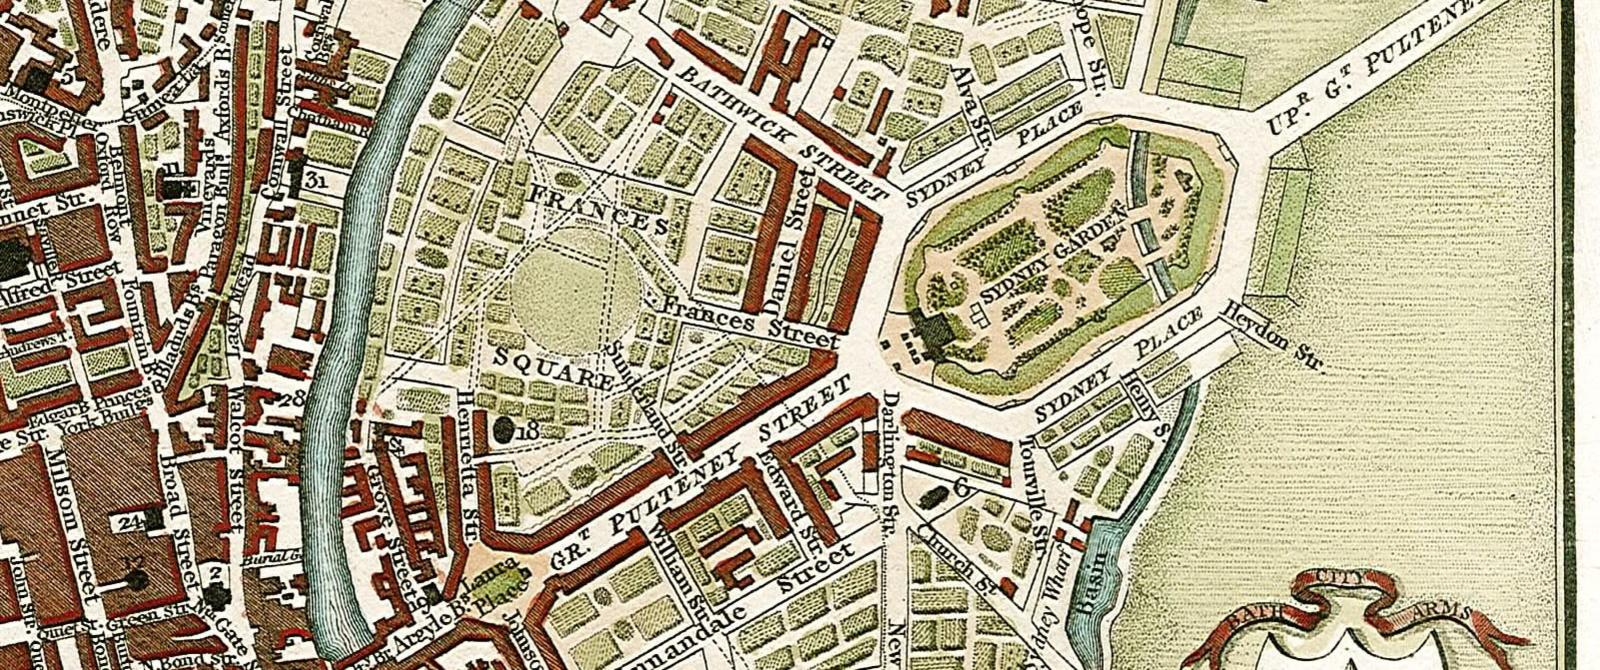 A colourful old map of Bath, showing Frances Square in Bathwick, which was never built